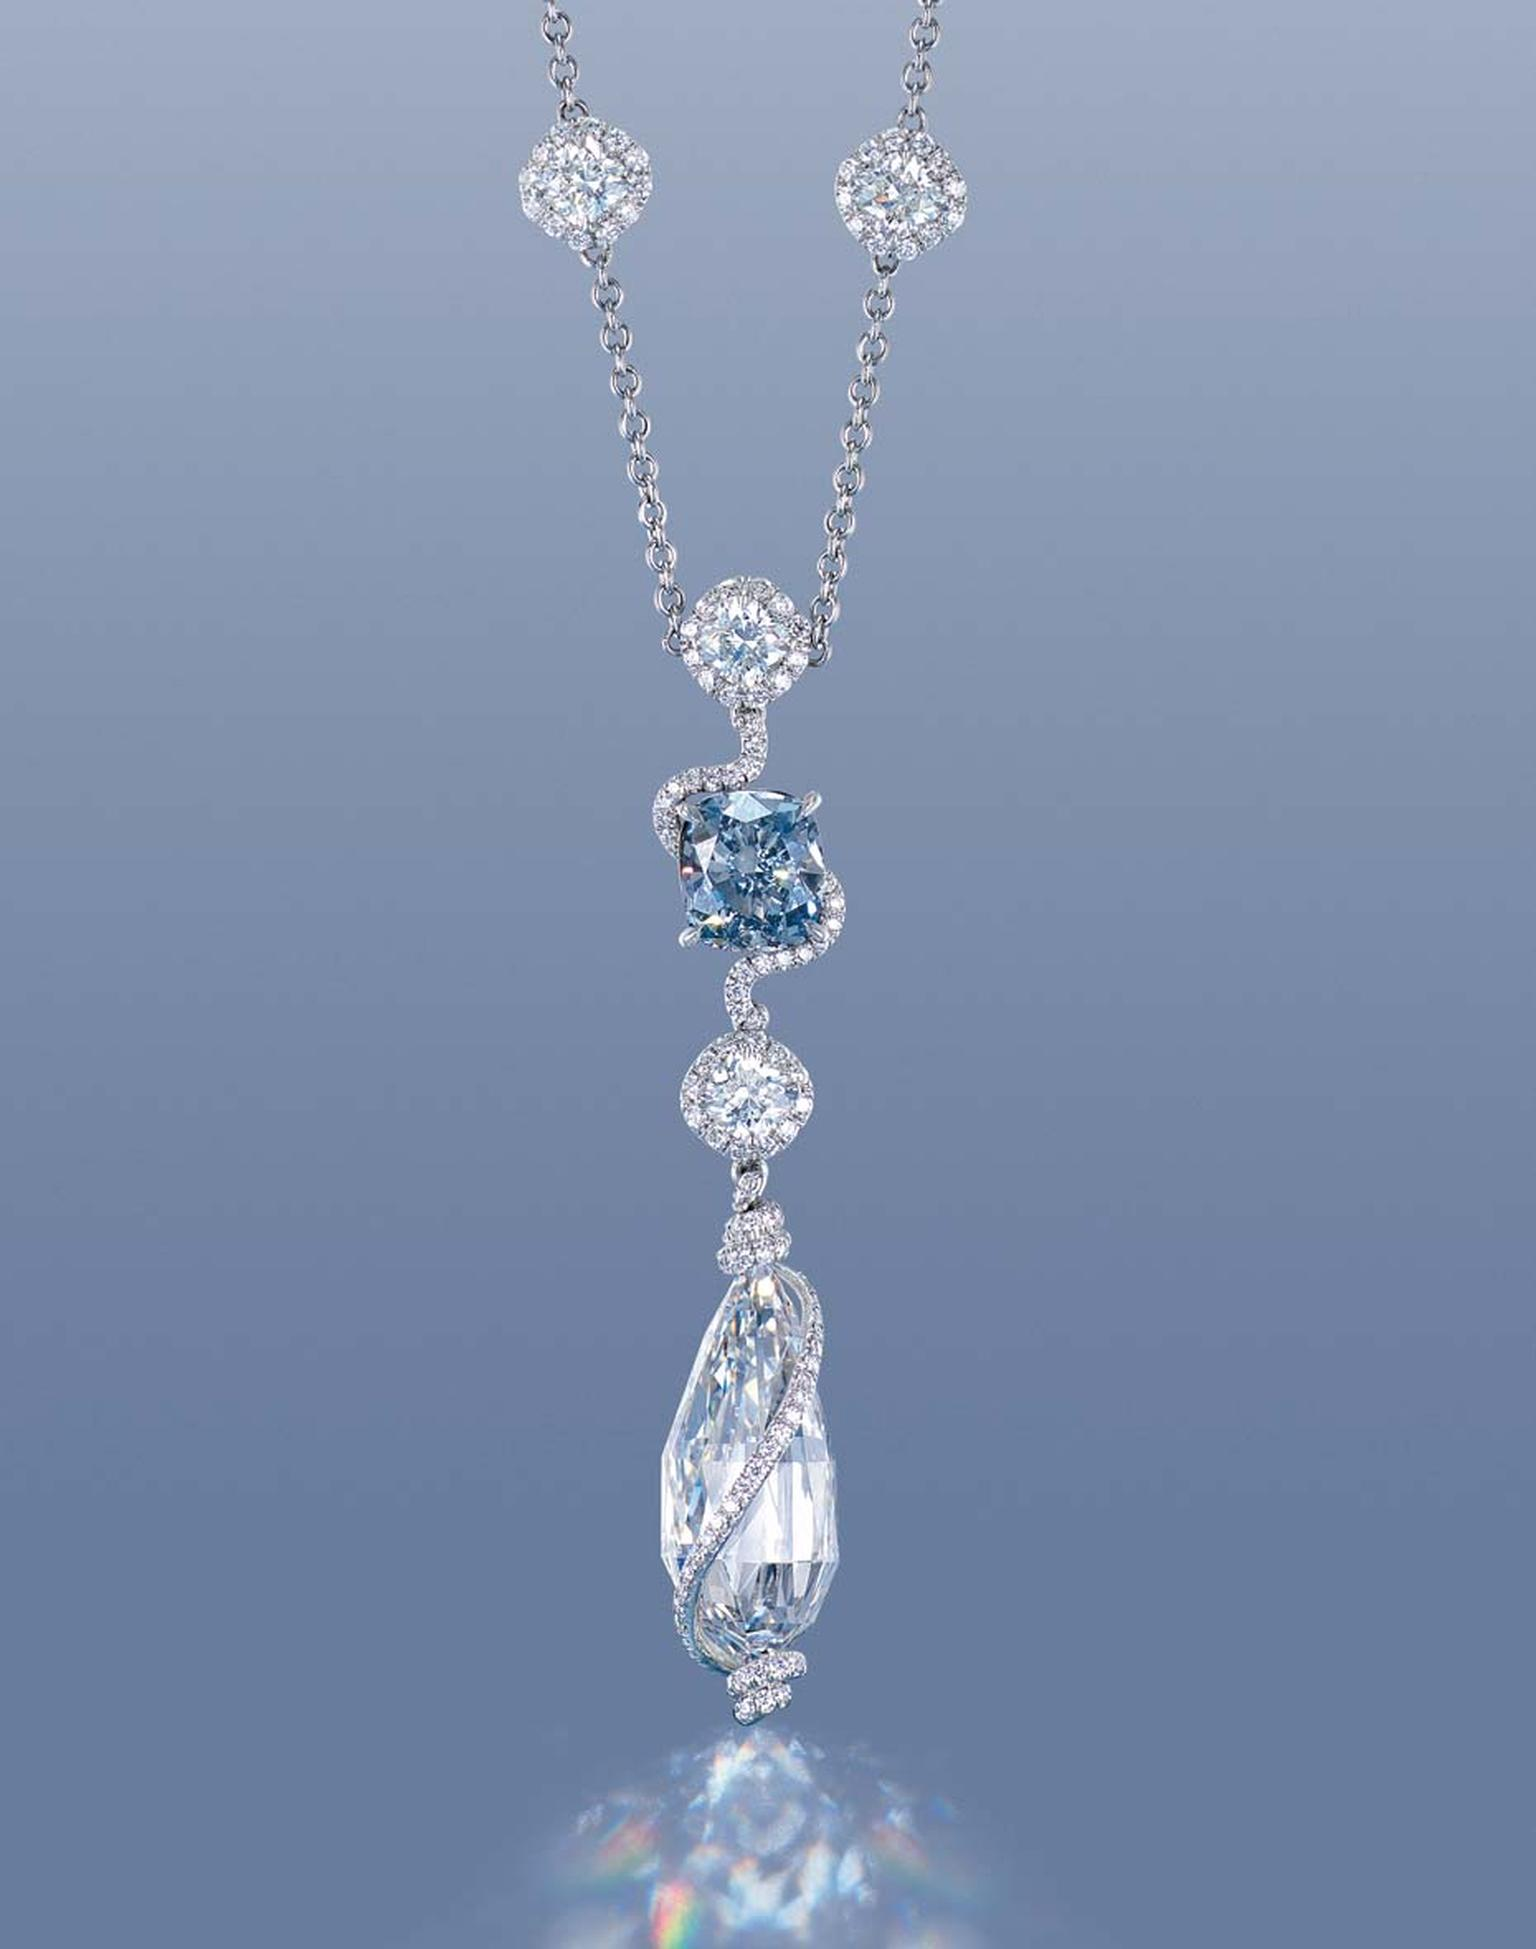 Internally flawless 12ct D colour briolette diamond pendent (estimate: US$1.6-2.3 million)